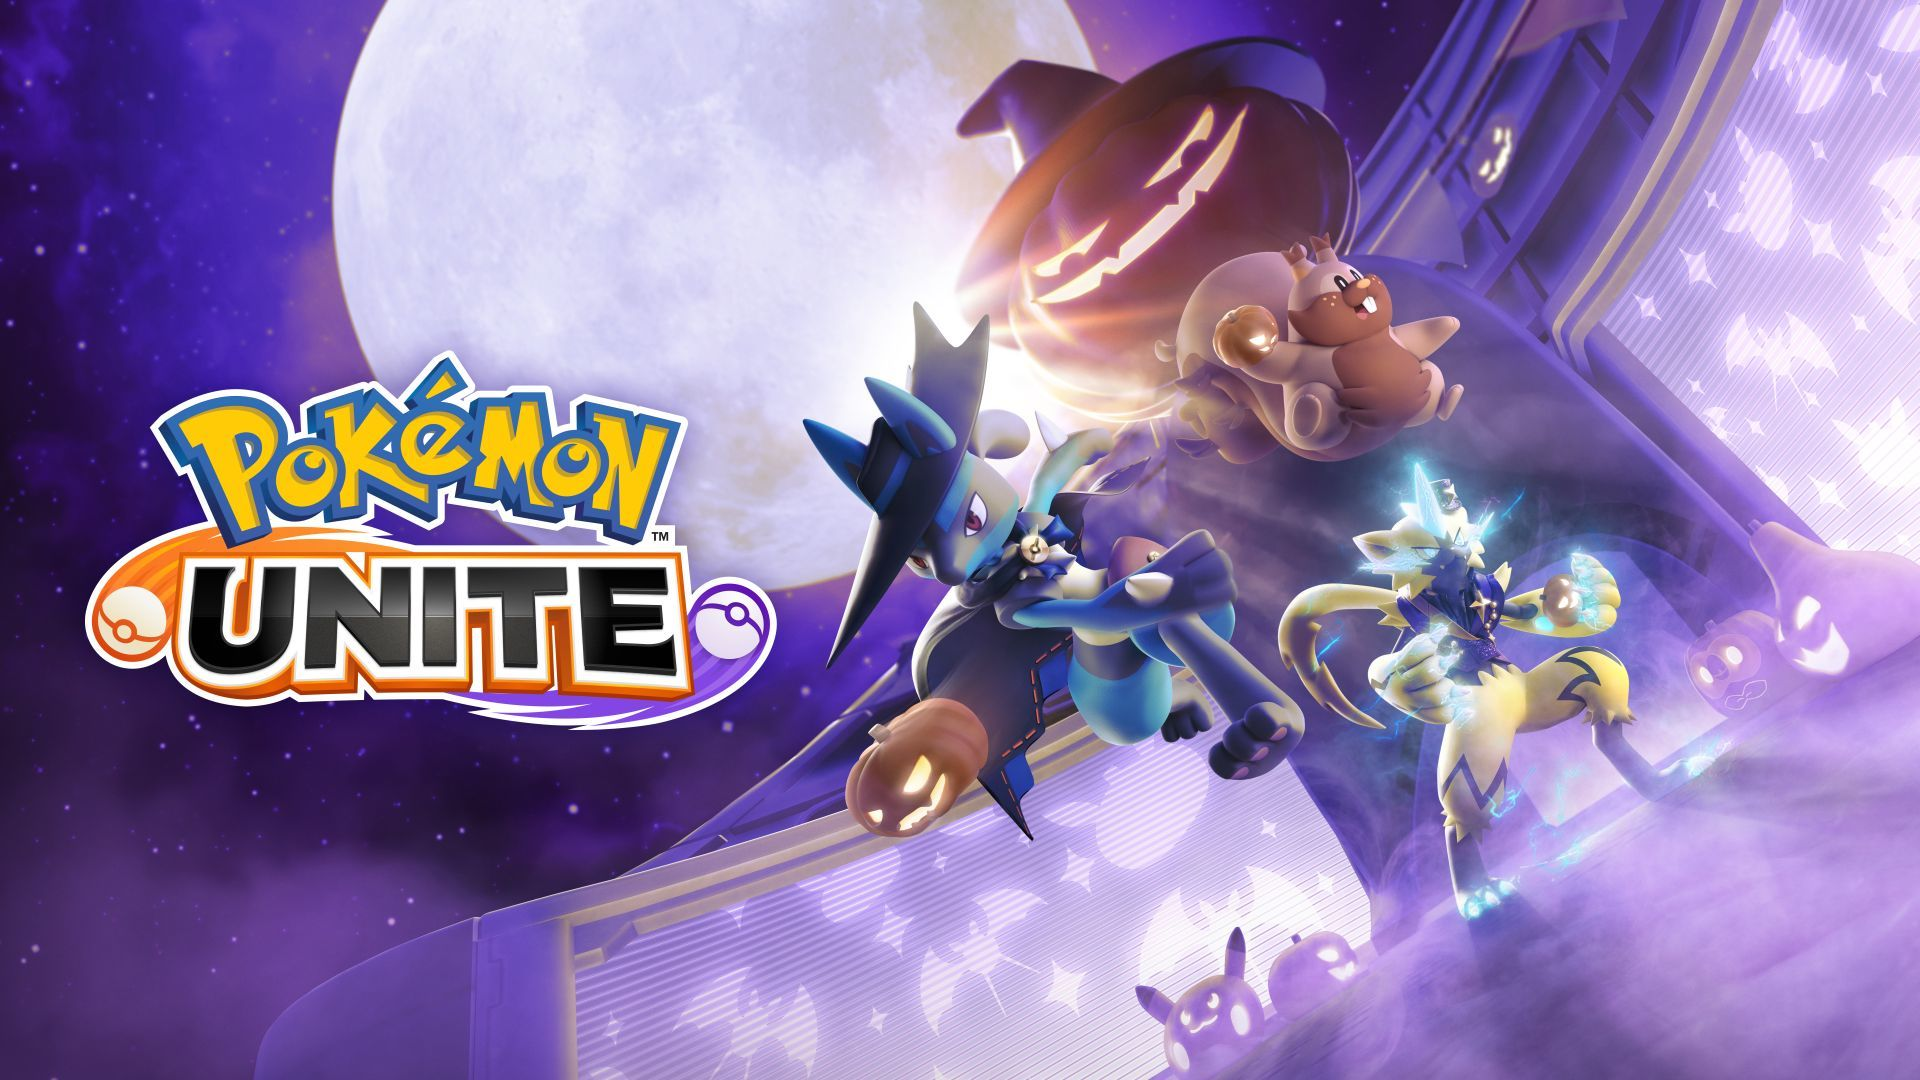 Pokémon Unite Halloween event art with Lucario and Greedent